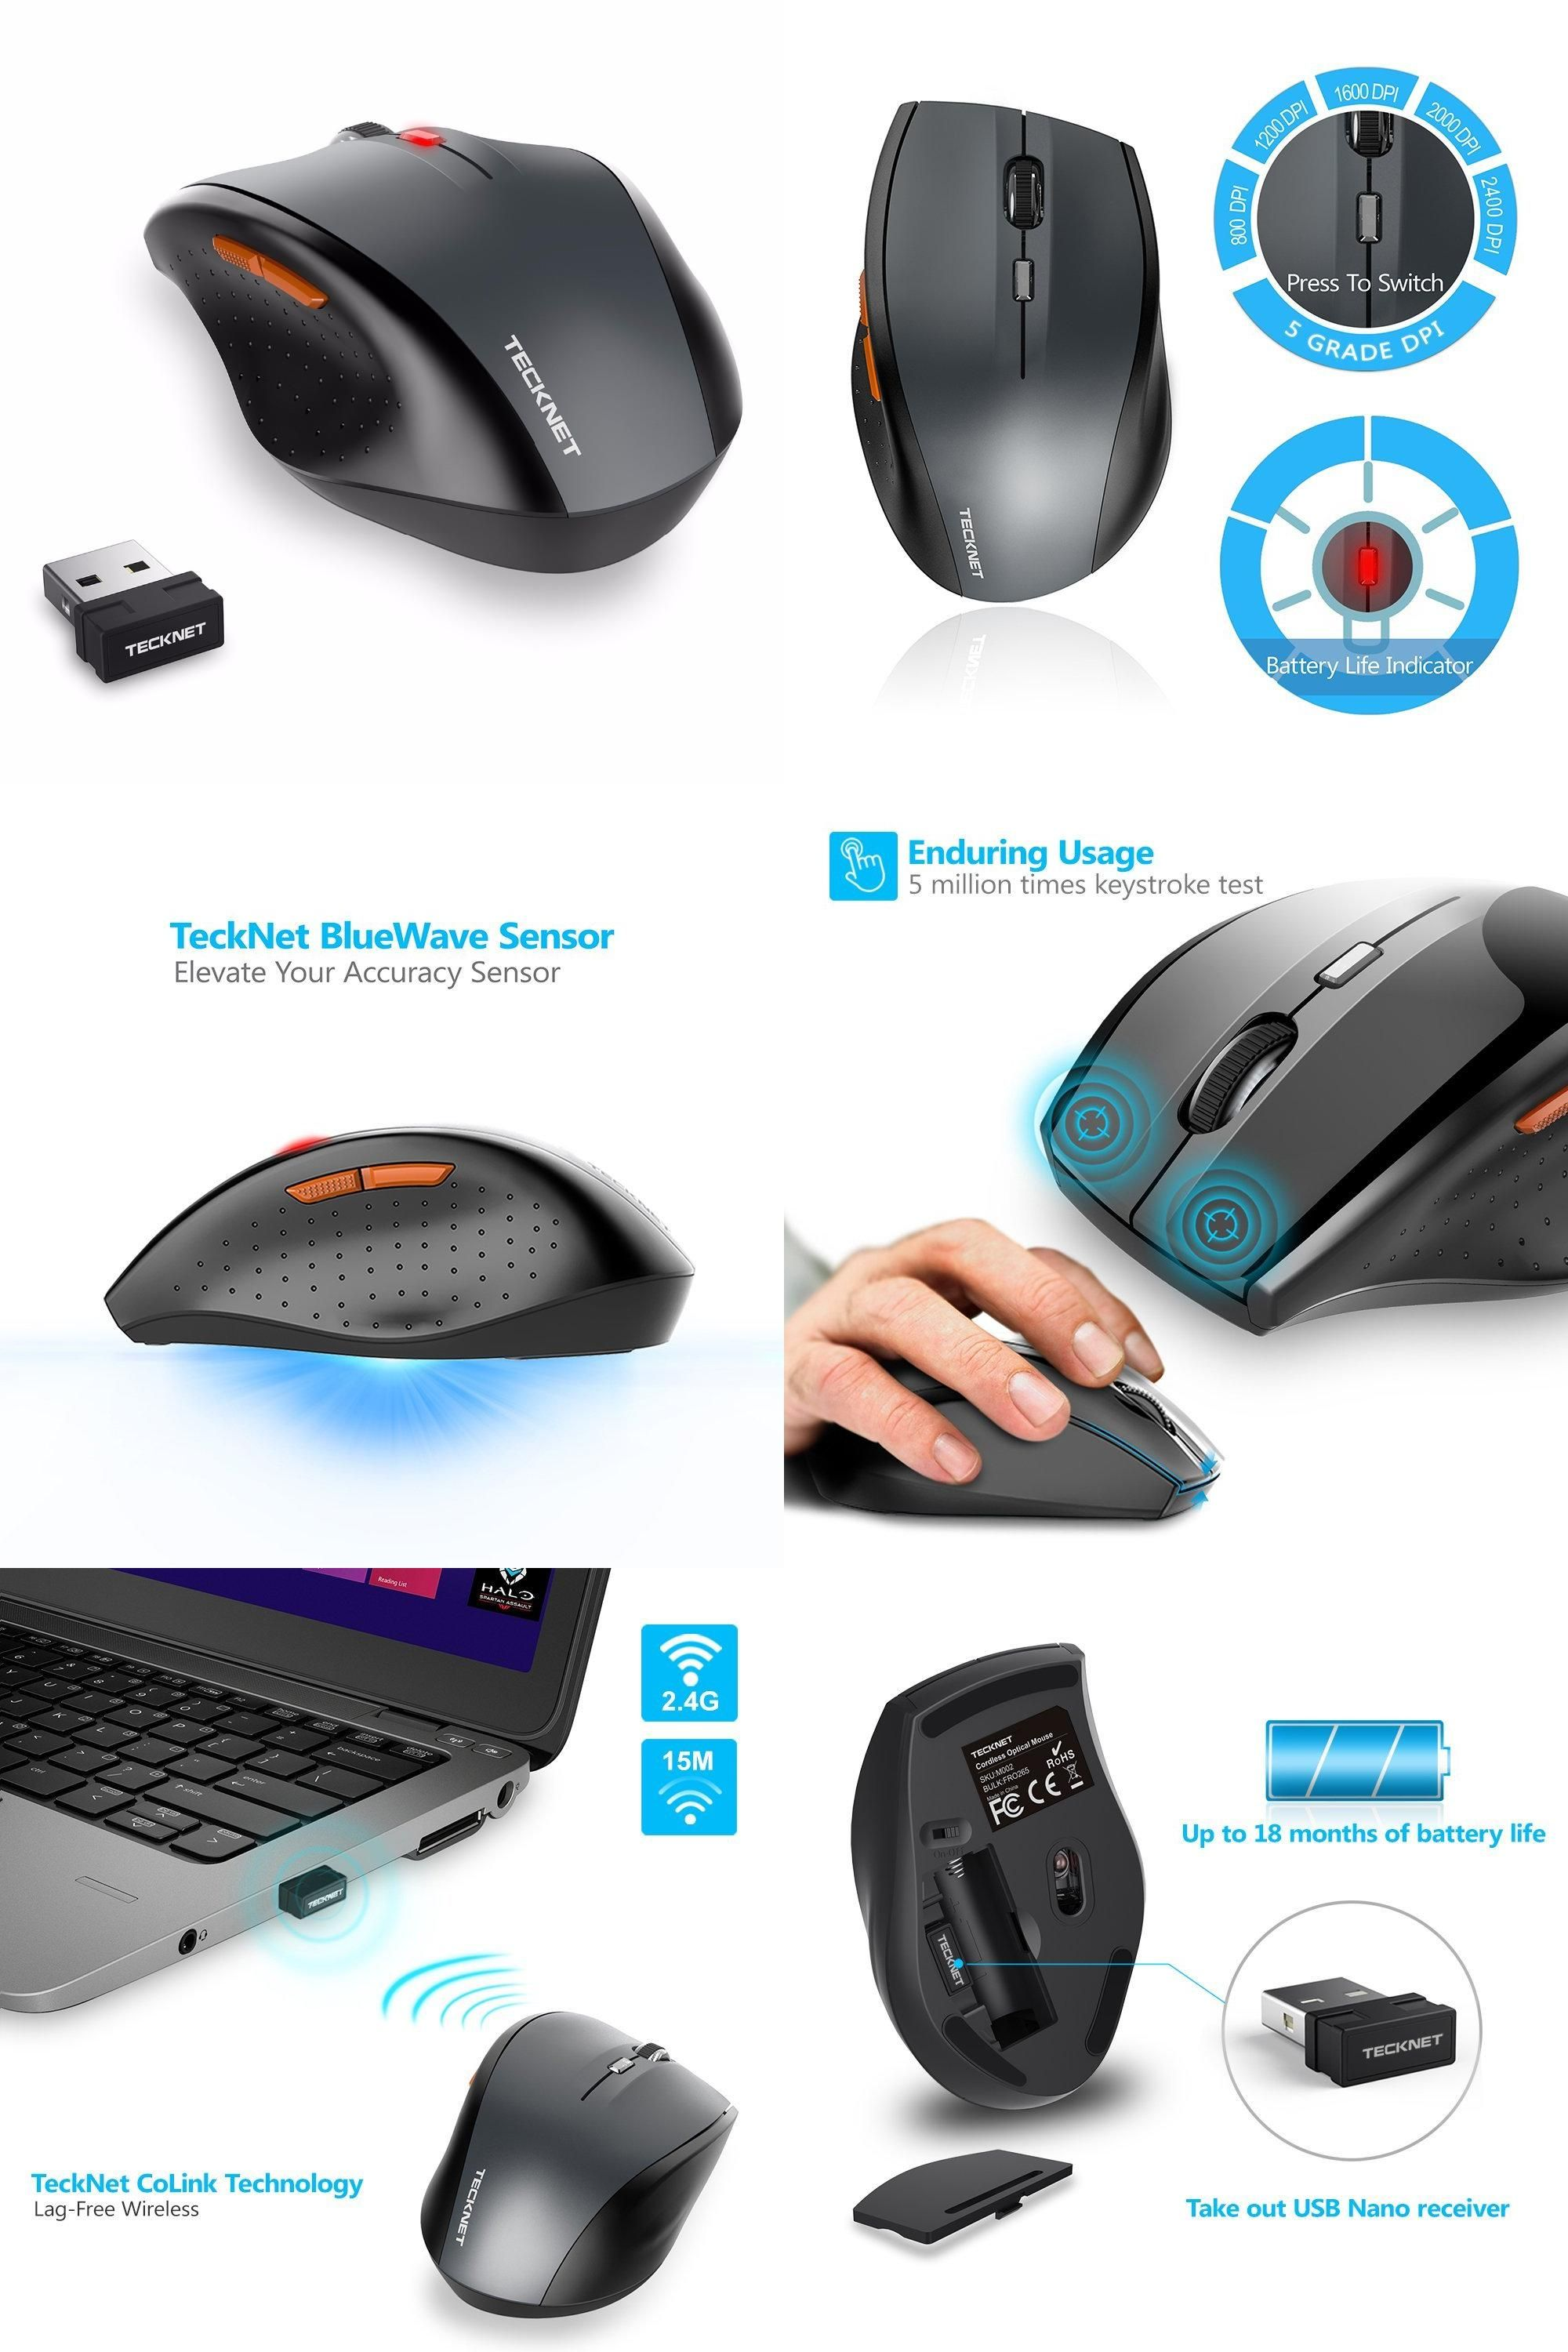 bae9b79bc58 [Visit to Buy] TeckNet M002 Nano Wireless Mouse,6 Buttons,18 Month Battery  Life,2000 DPI 3 Adjustment Levels-Grey #Advertisement